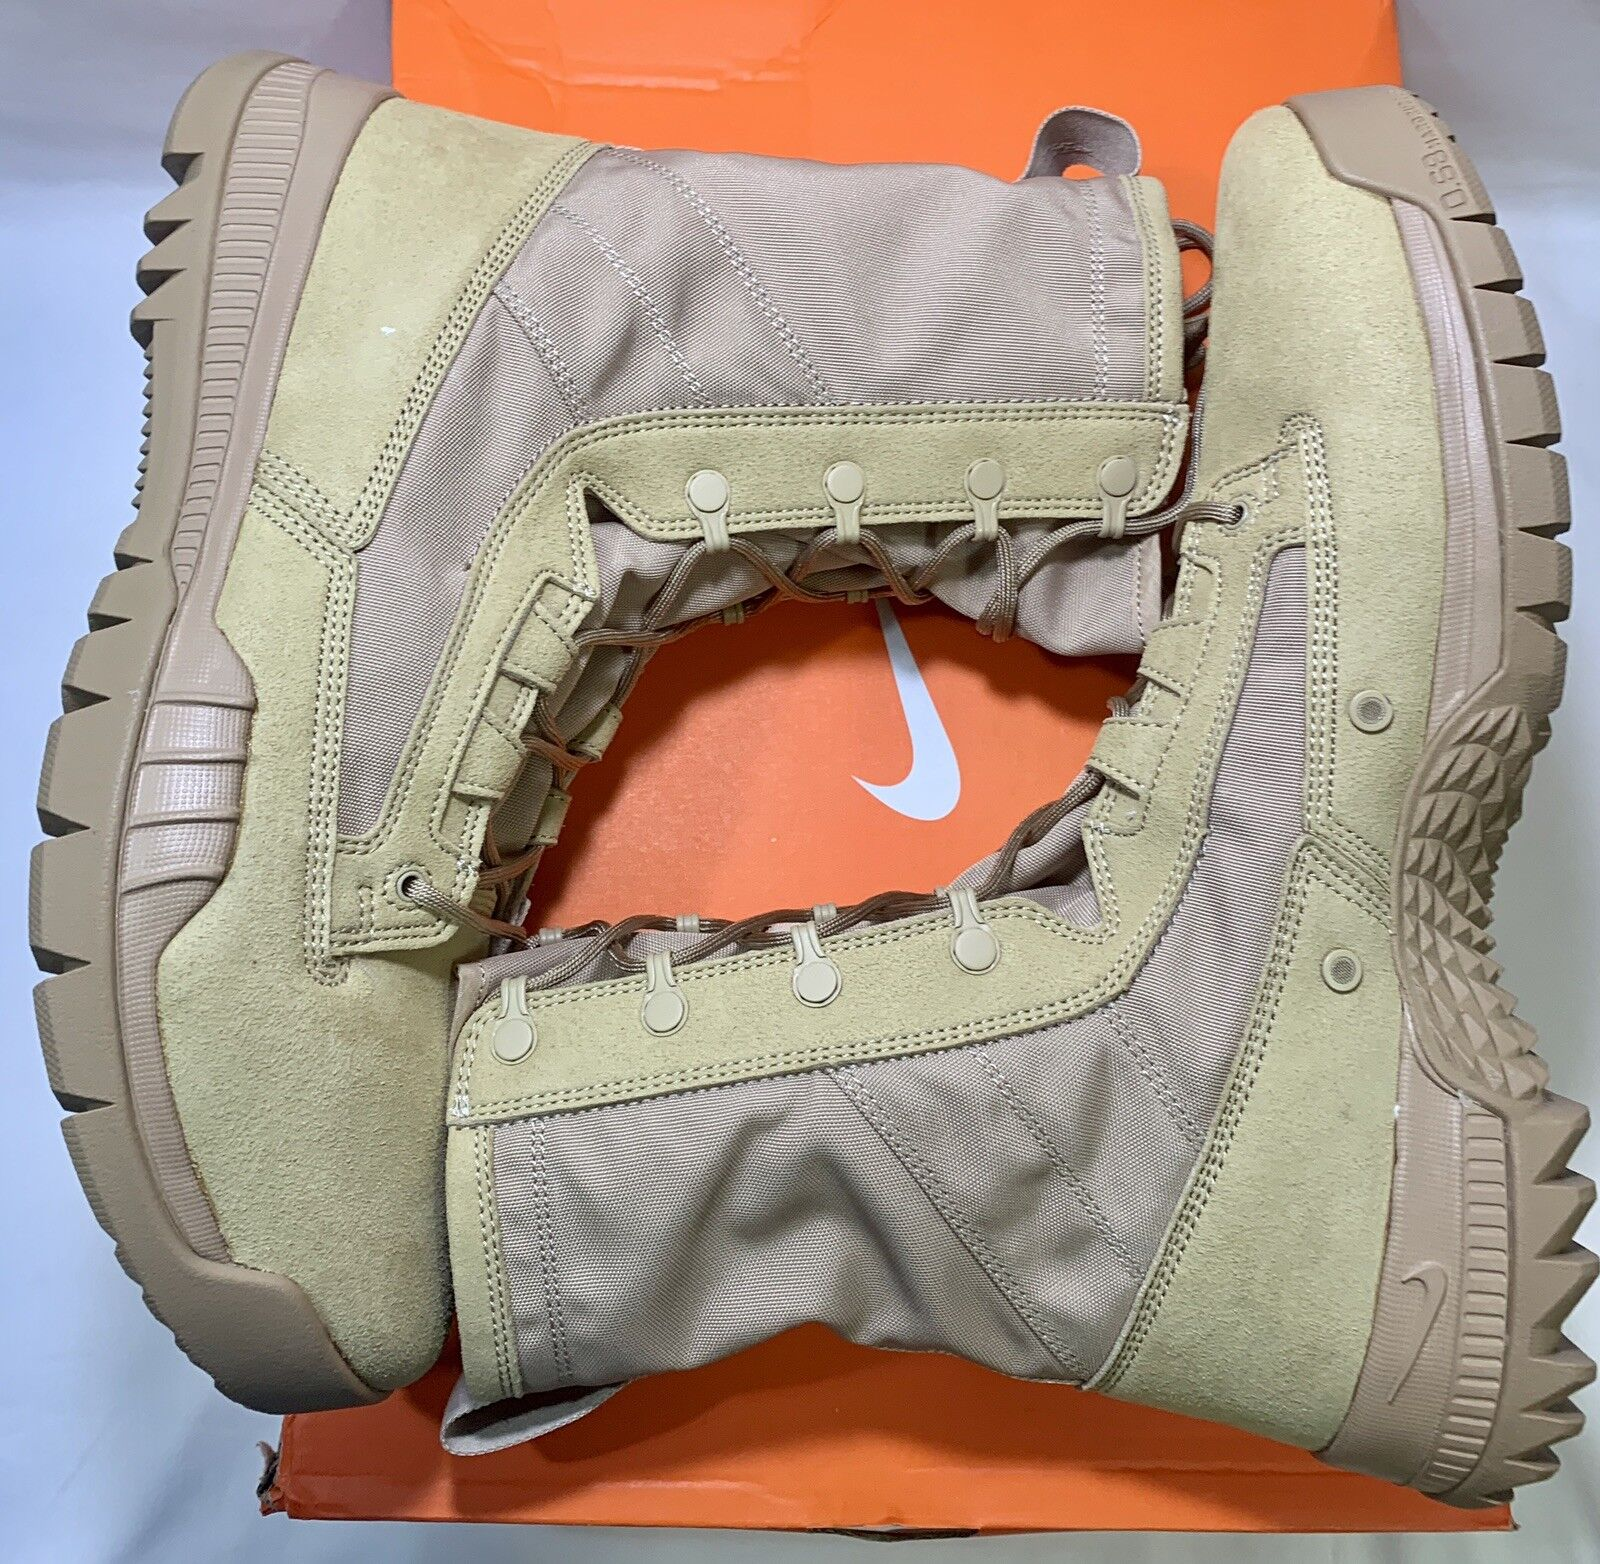 NIKE SFB FIELD 8  TACTICAL MILITARY BOOTS BRITISH KHAKI 631371-220 MEN'S SIZE 12